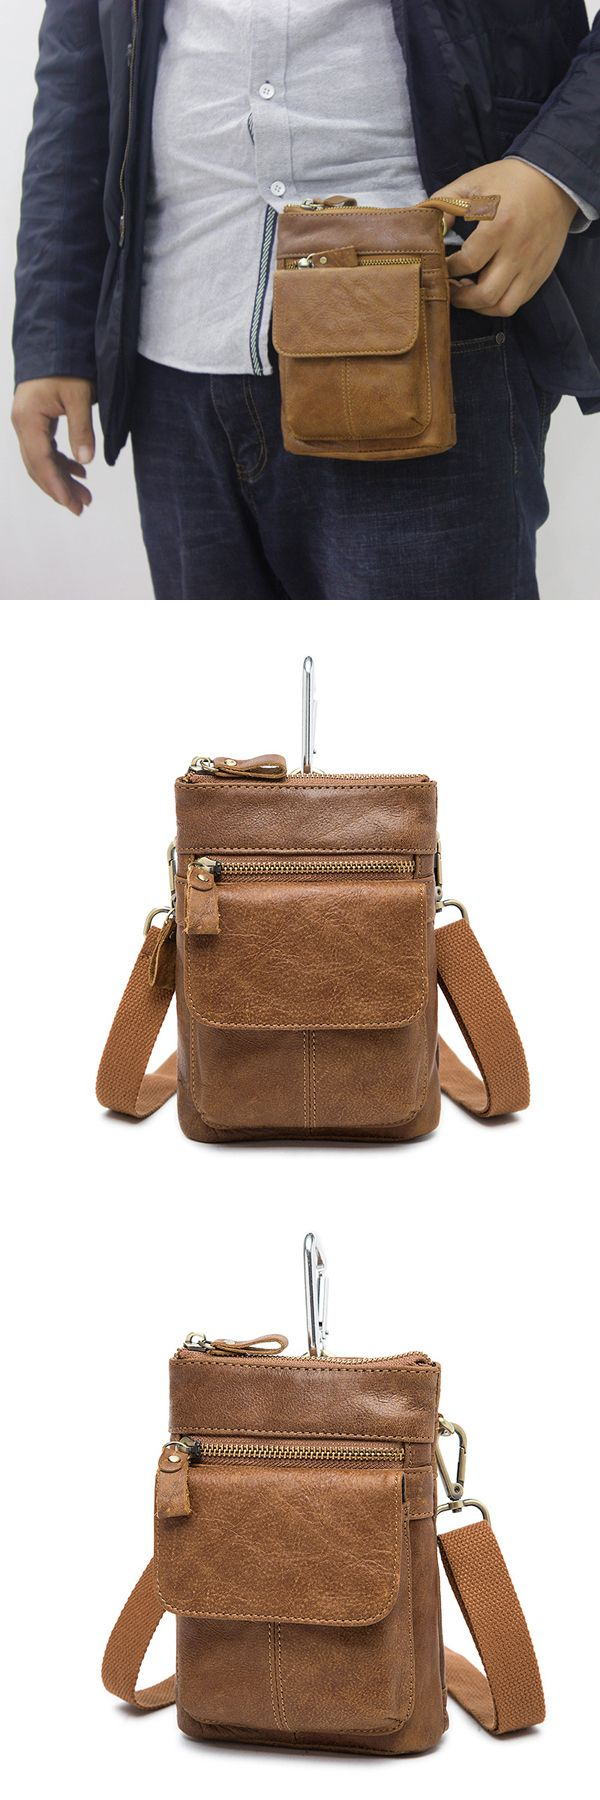 Male Genuine Leather Waist Bag Powerbank Phone Waist Pouch Vintage Small Crossbody Bag